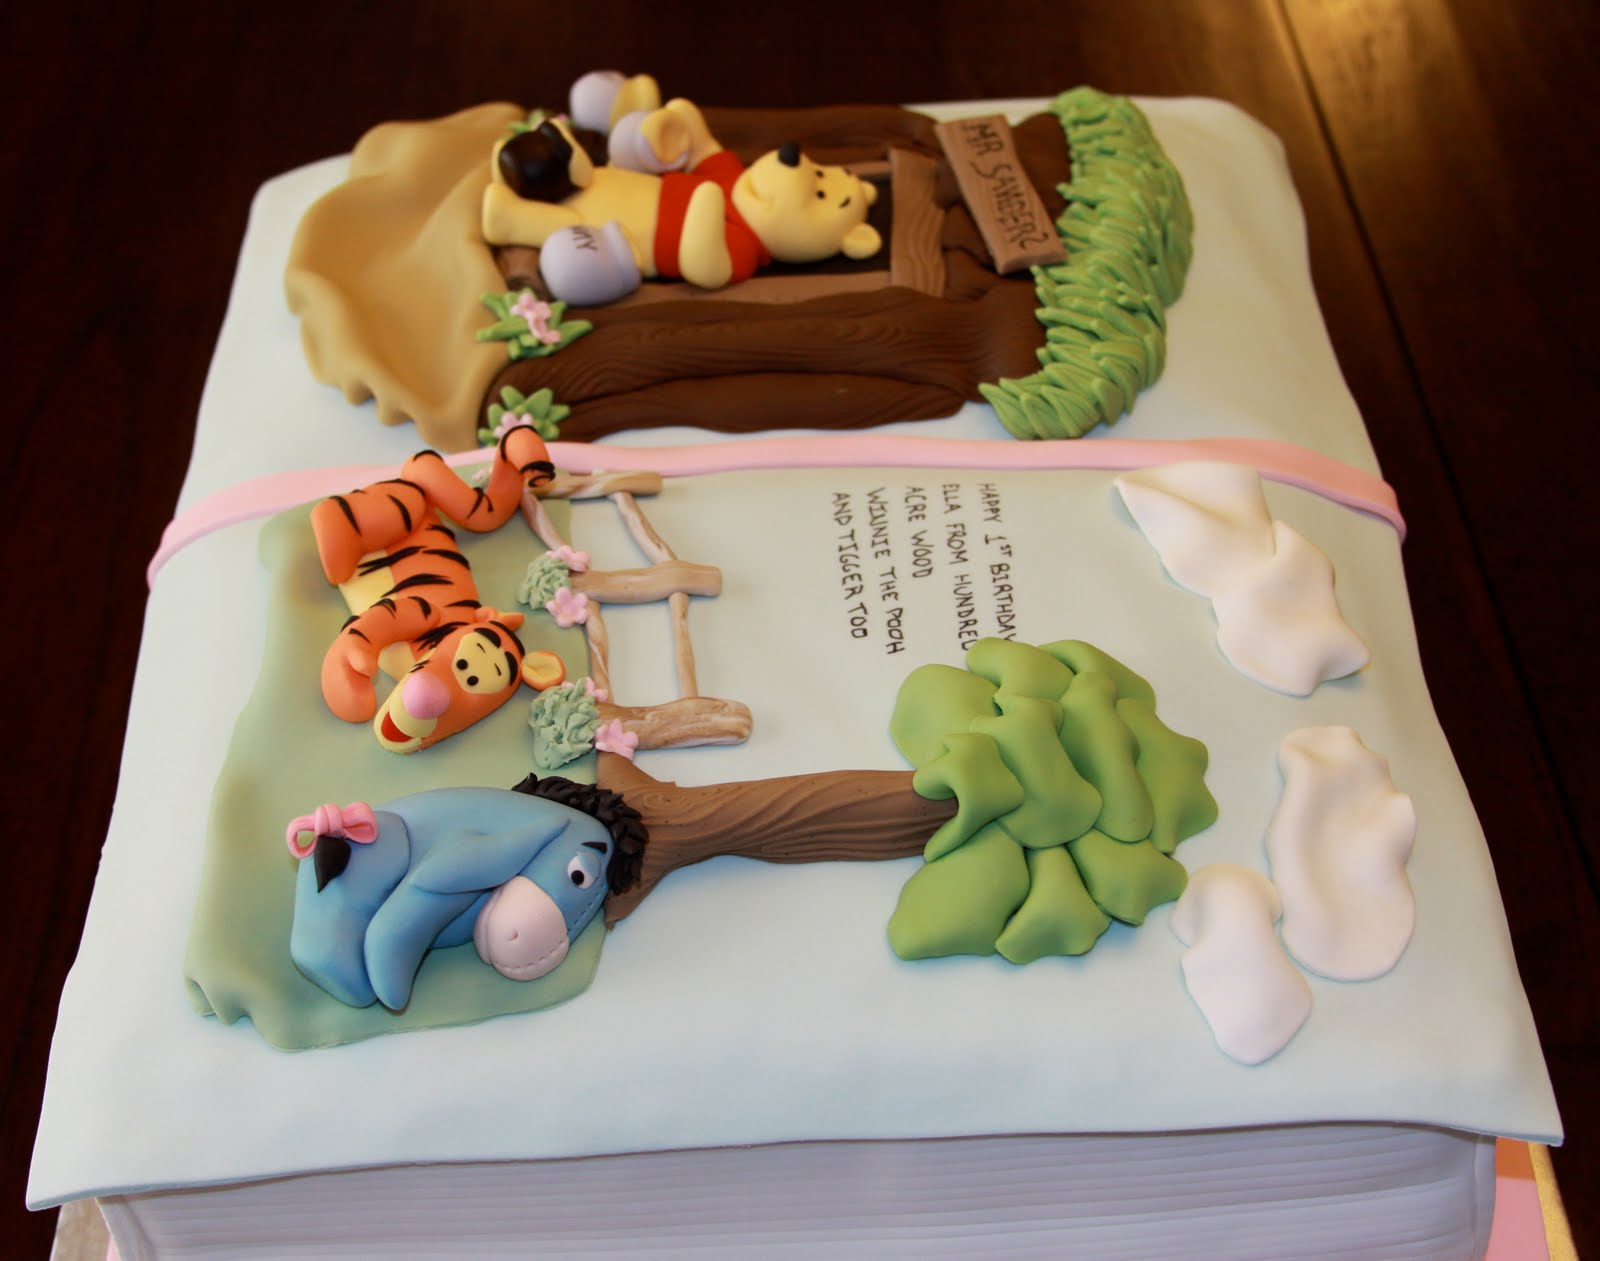 Cake Designs Books Download : .: Winnie The Pooh 3D Book Cake